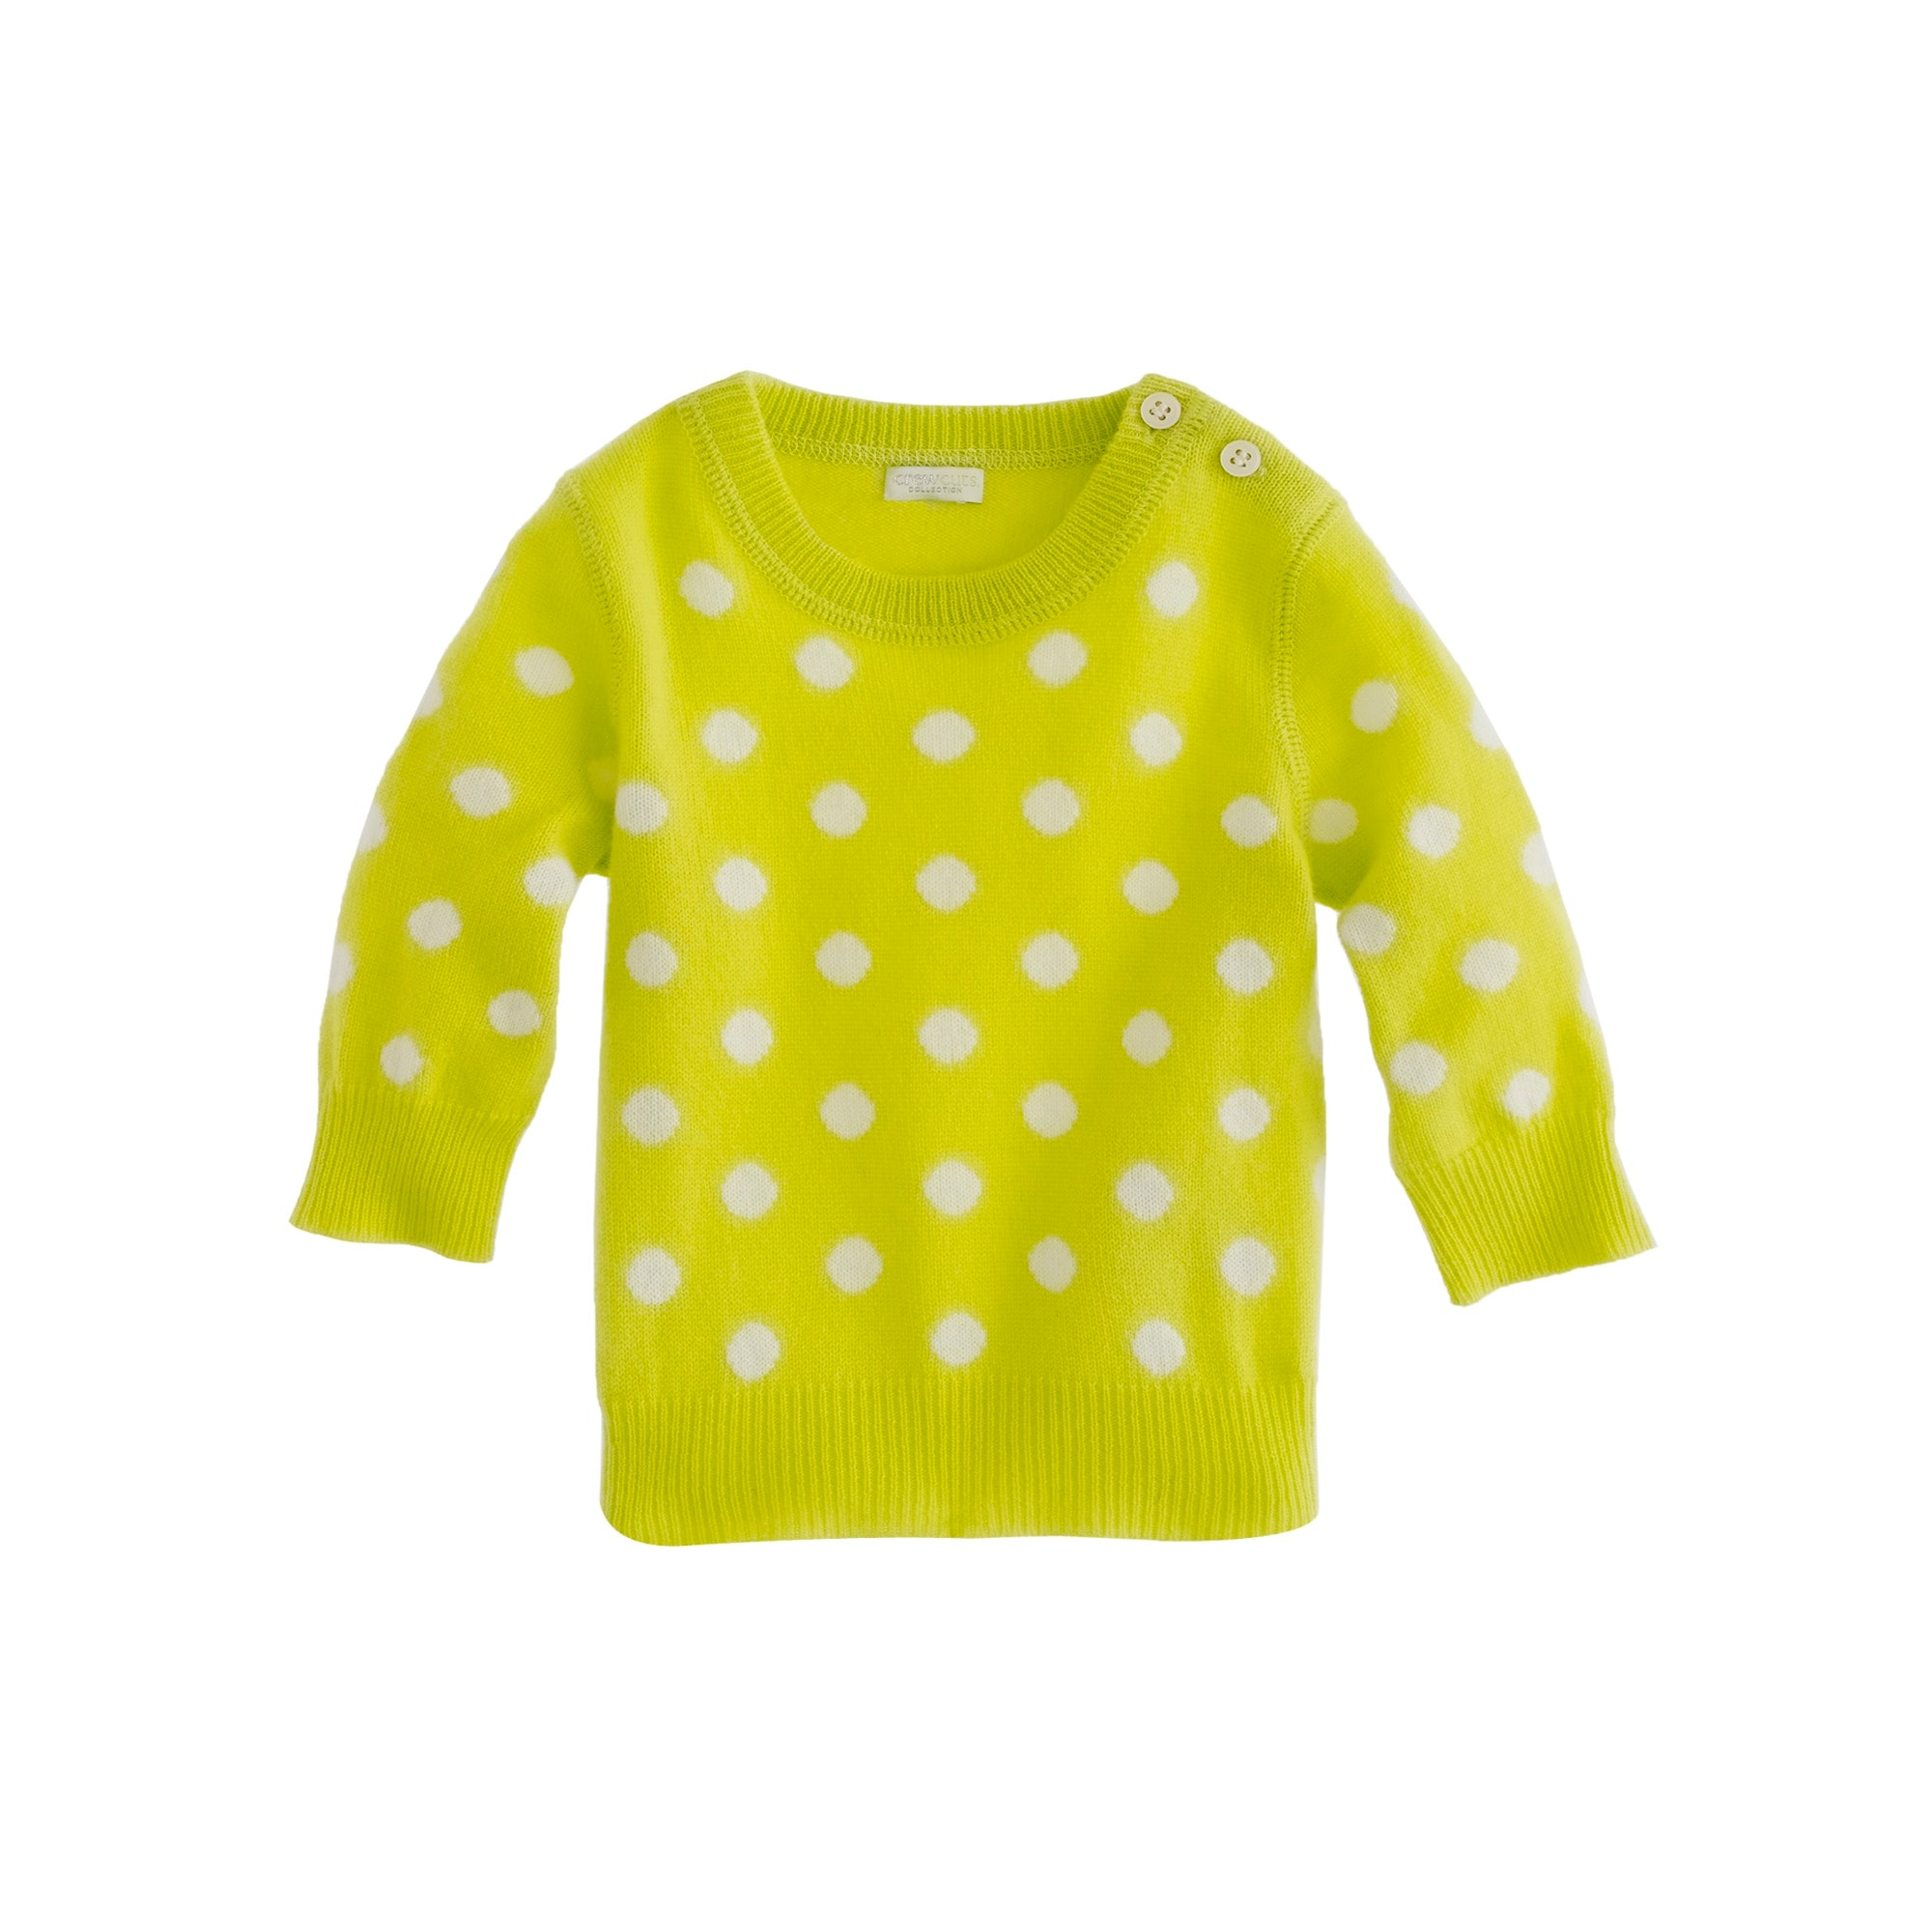 Baby cashmere sweater in polka dot